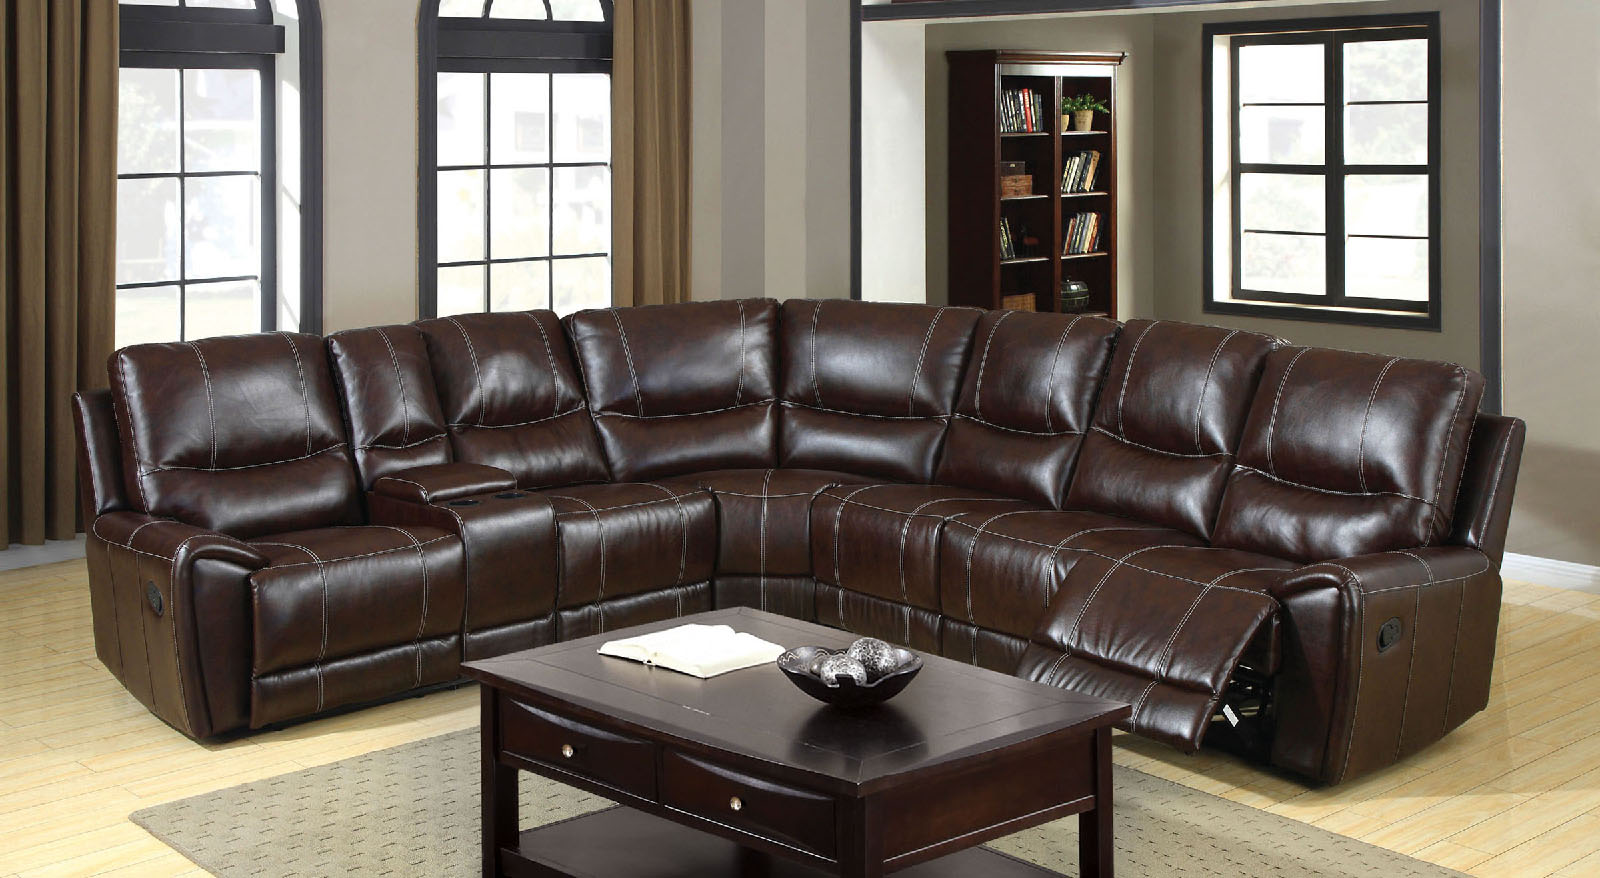 Brown Leather Ottoman Coffee Table Storage